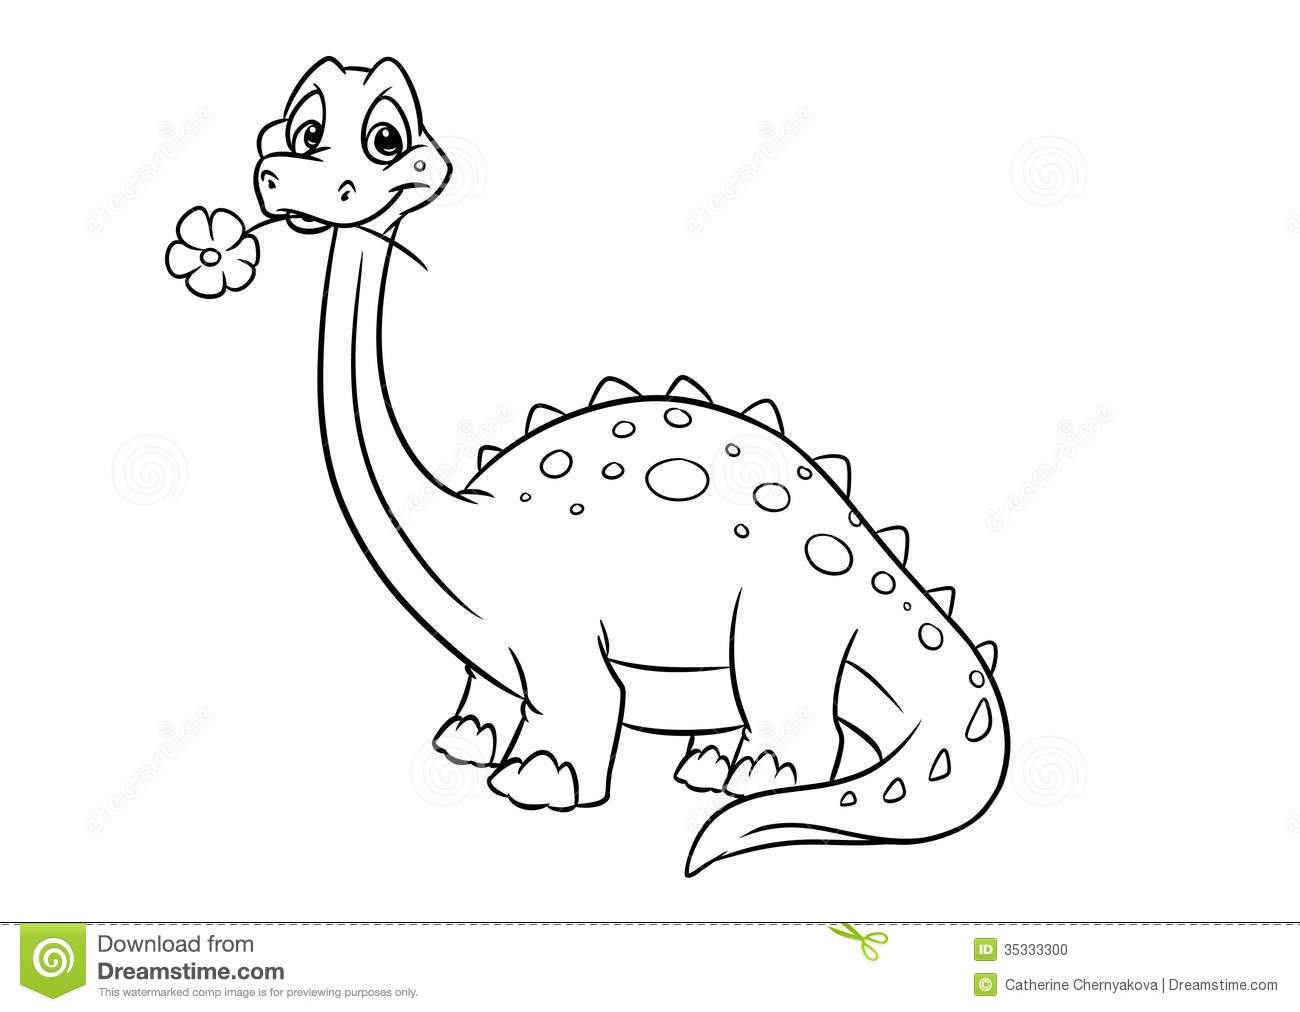 dinosaur apatosaurus coloring pages stock illustration illustration of illustration character. Black Bedroom Furniture Sets. Home Design Ideas